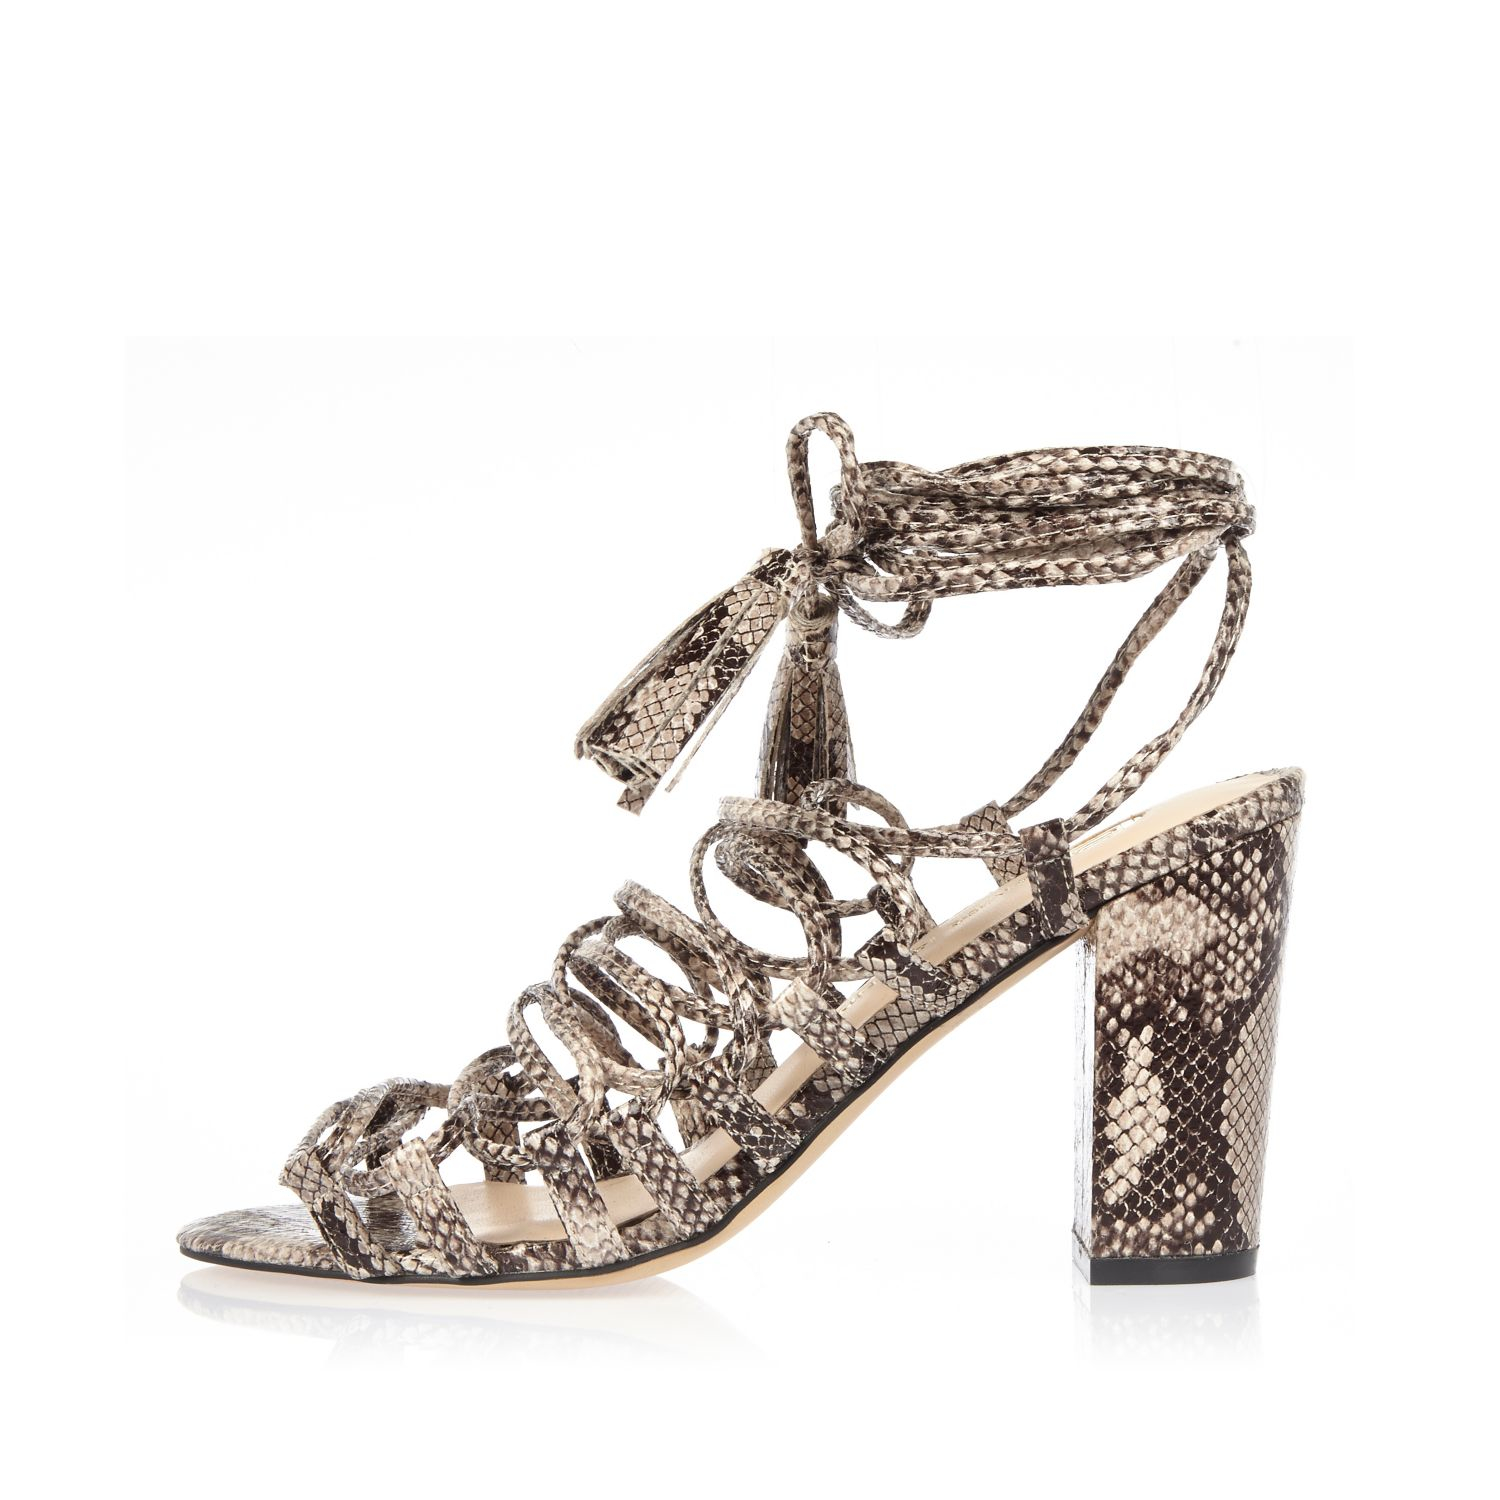 0530e66fe605 Lyst - River Island Grey Snake Print Lace-up Block Heel Sandals in Gray